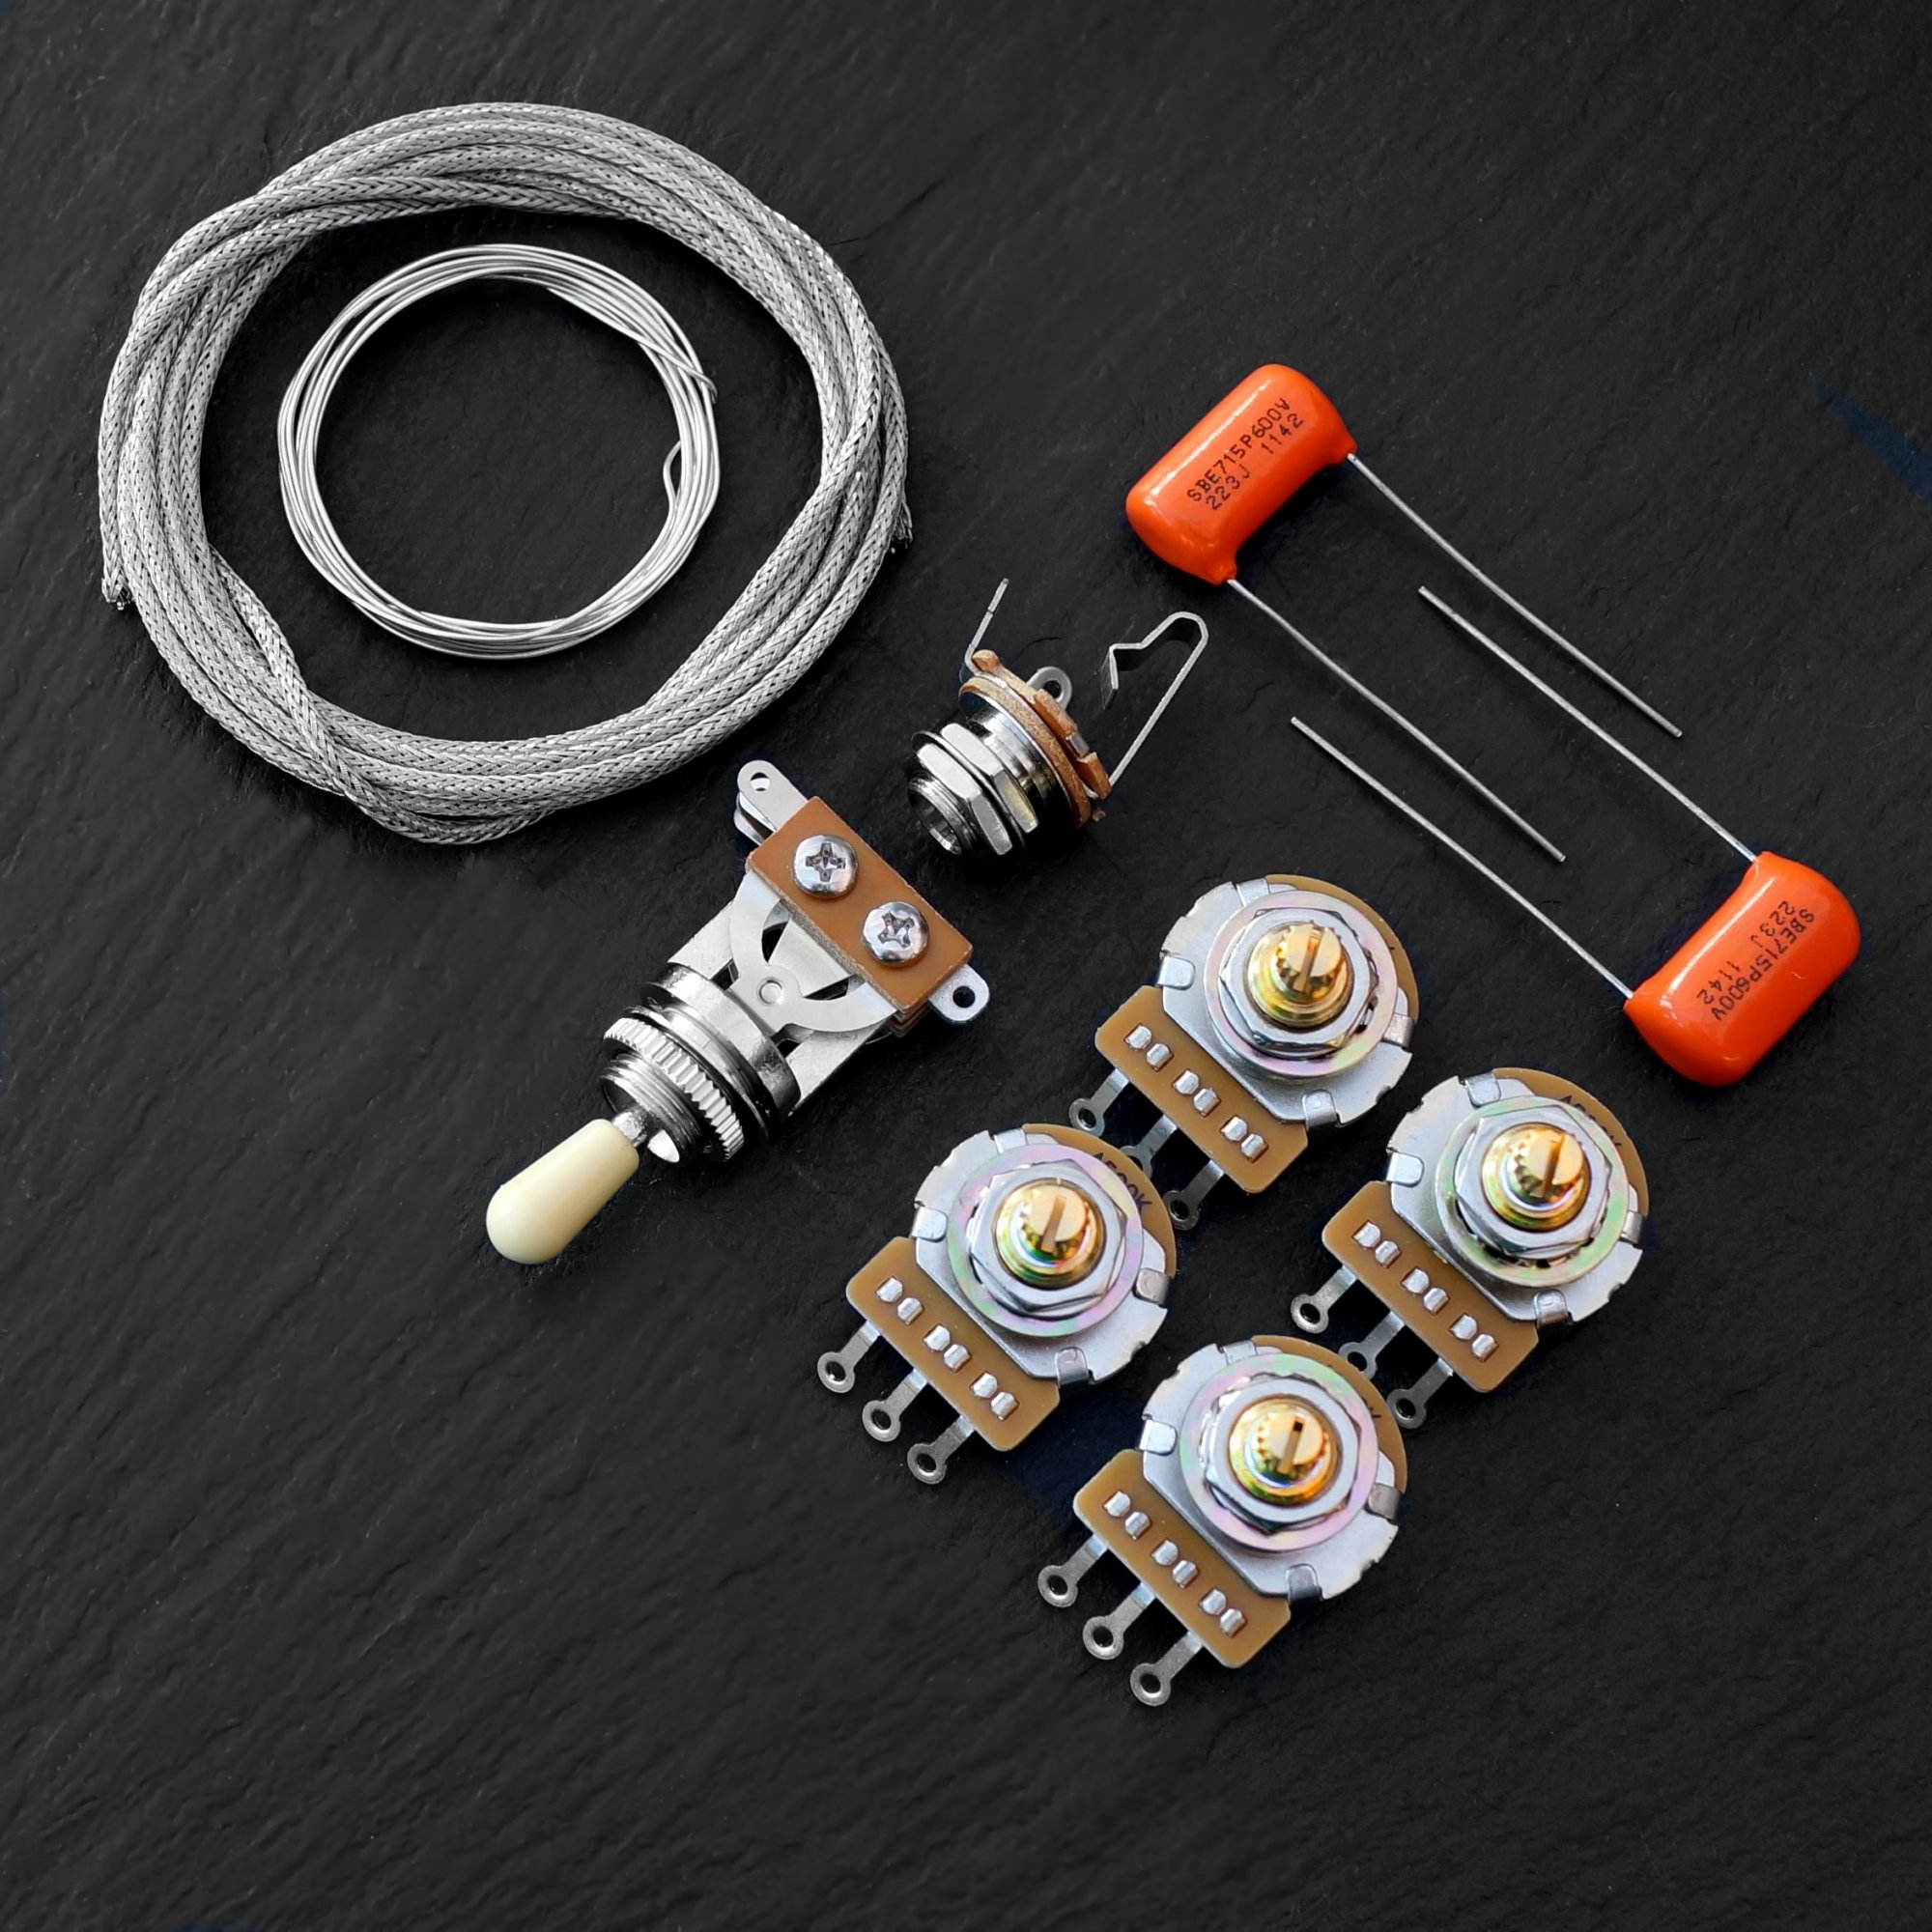 hight resolution of guitar kits by axetec wiring kits for les paul sg 335sg wiring harness uk 3